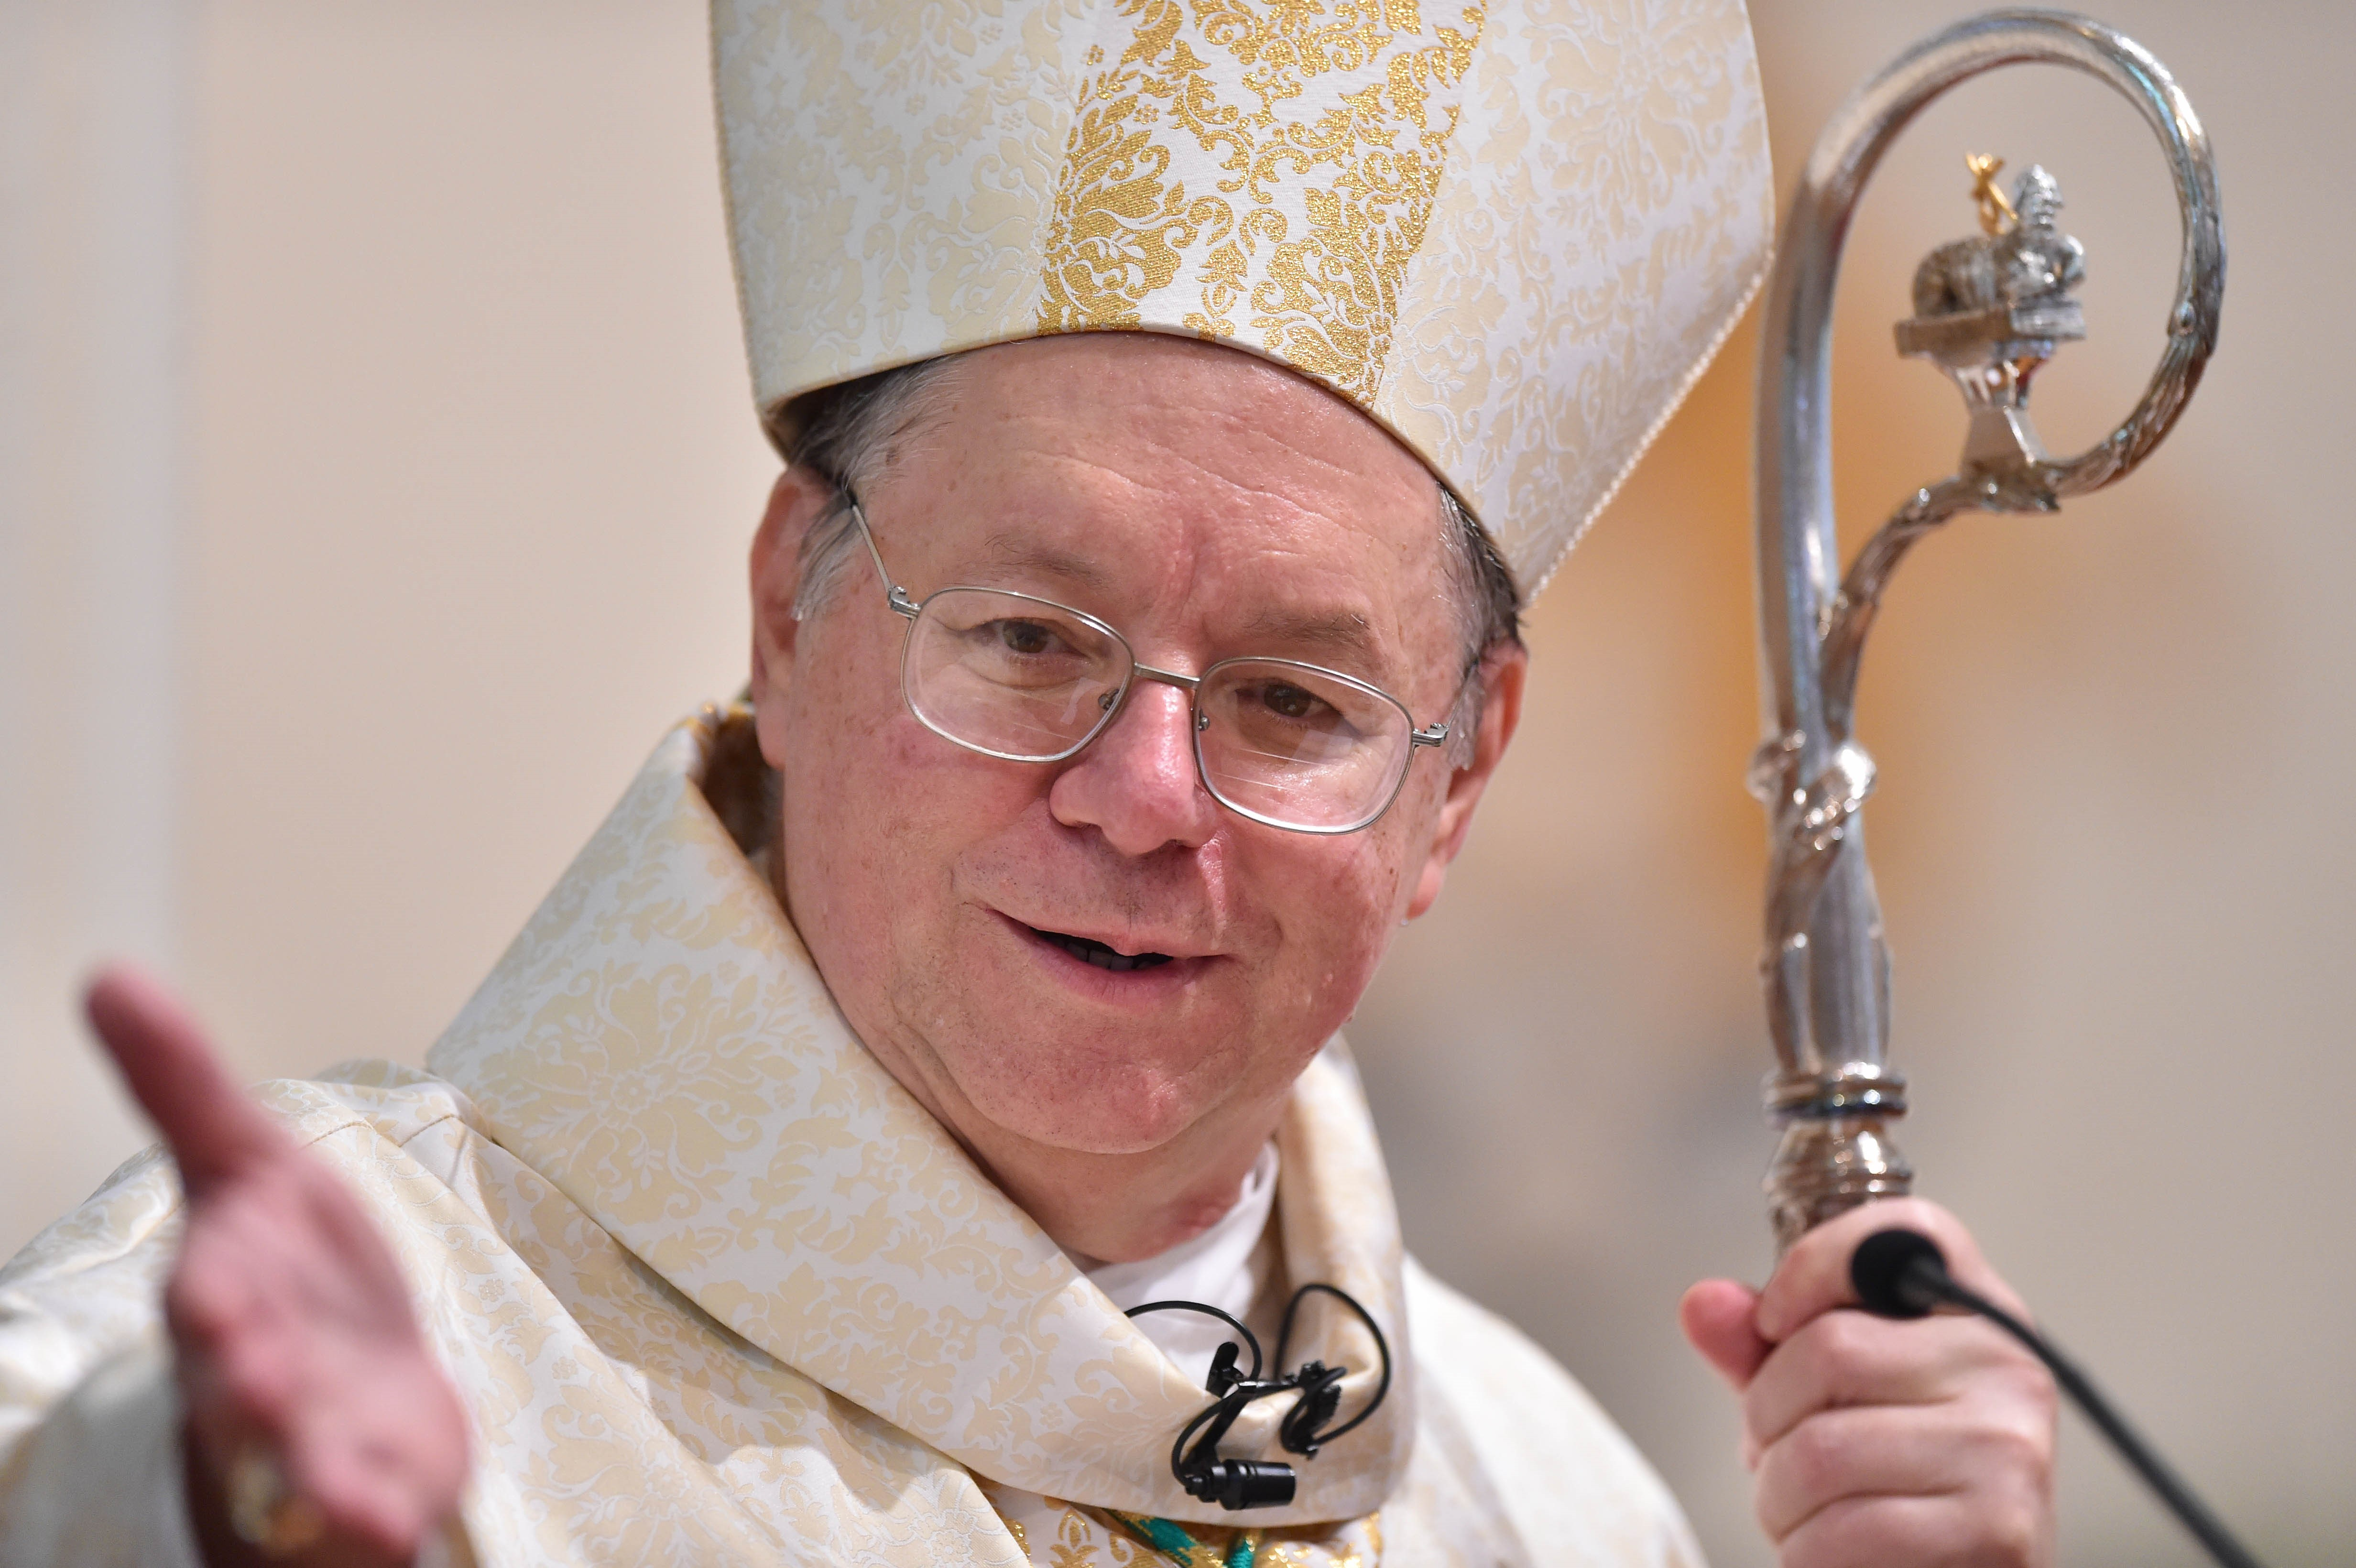 After delay for surgery Bishop Kihneman takes helm of